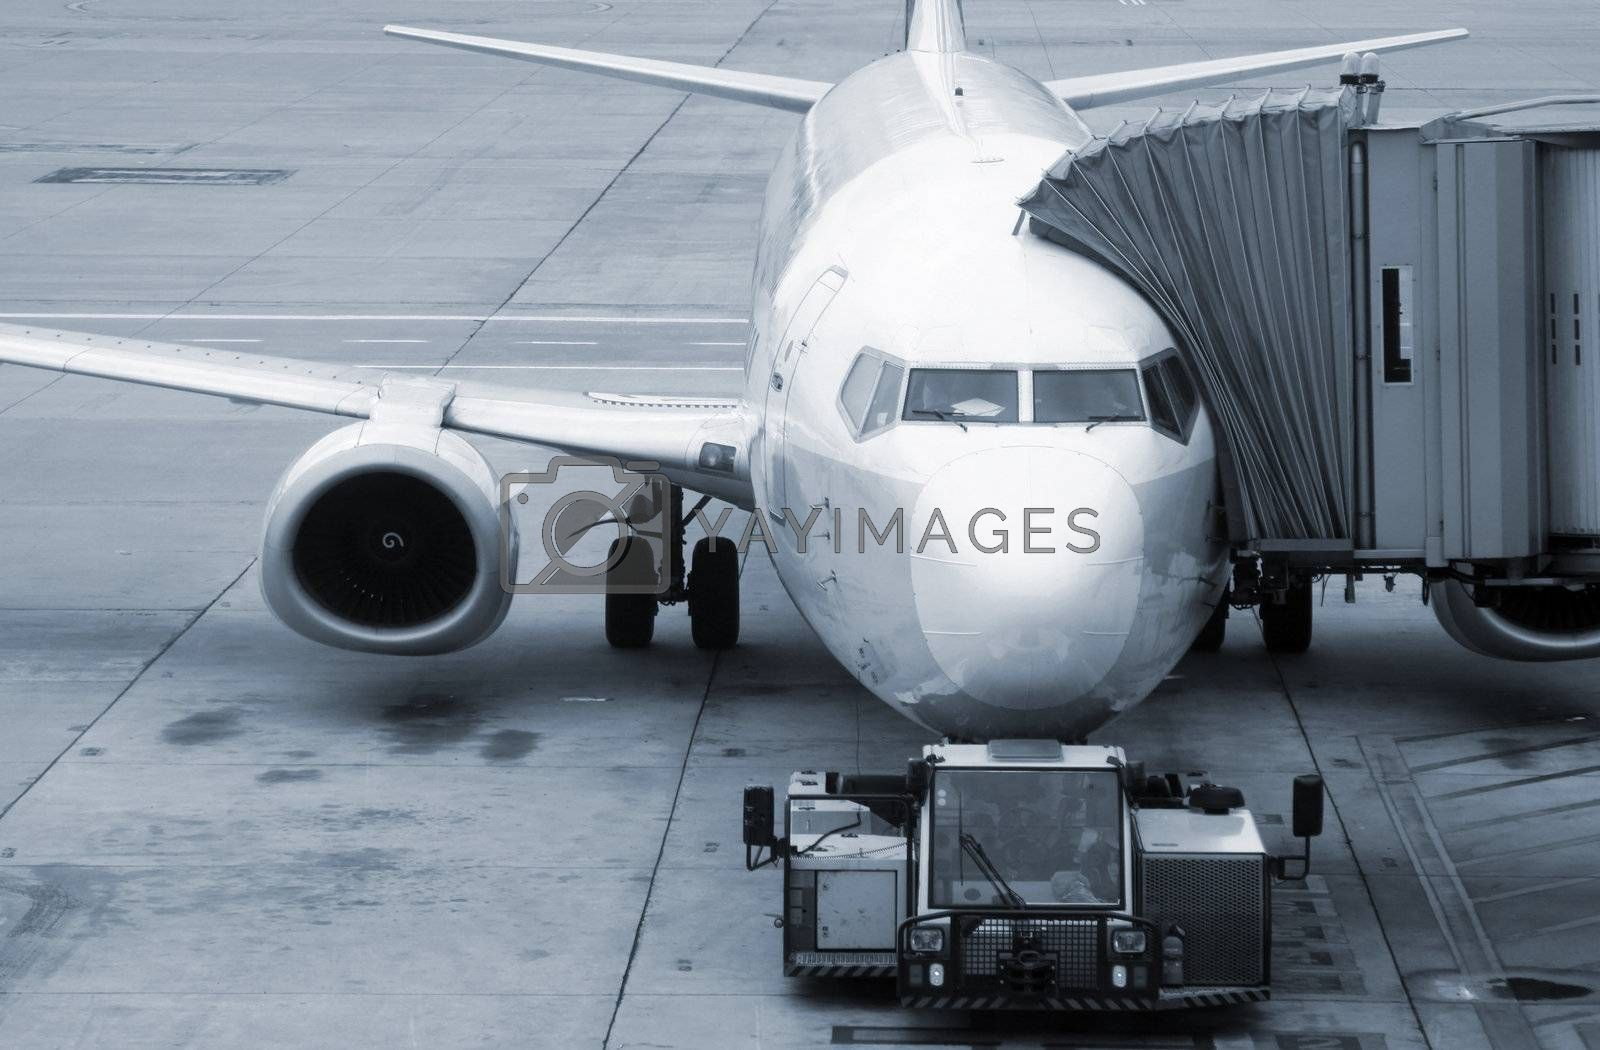 Aircraft standing at the airport ready for boarding